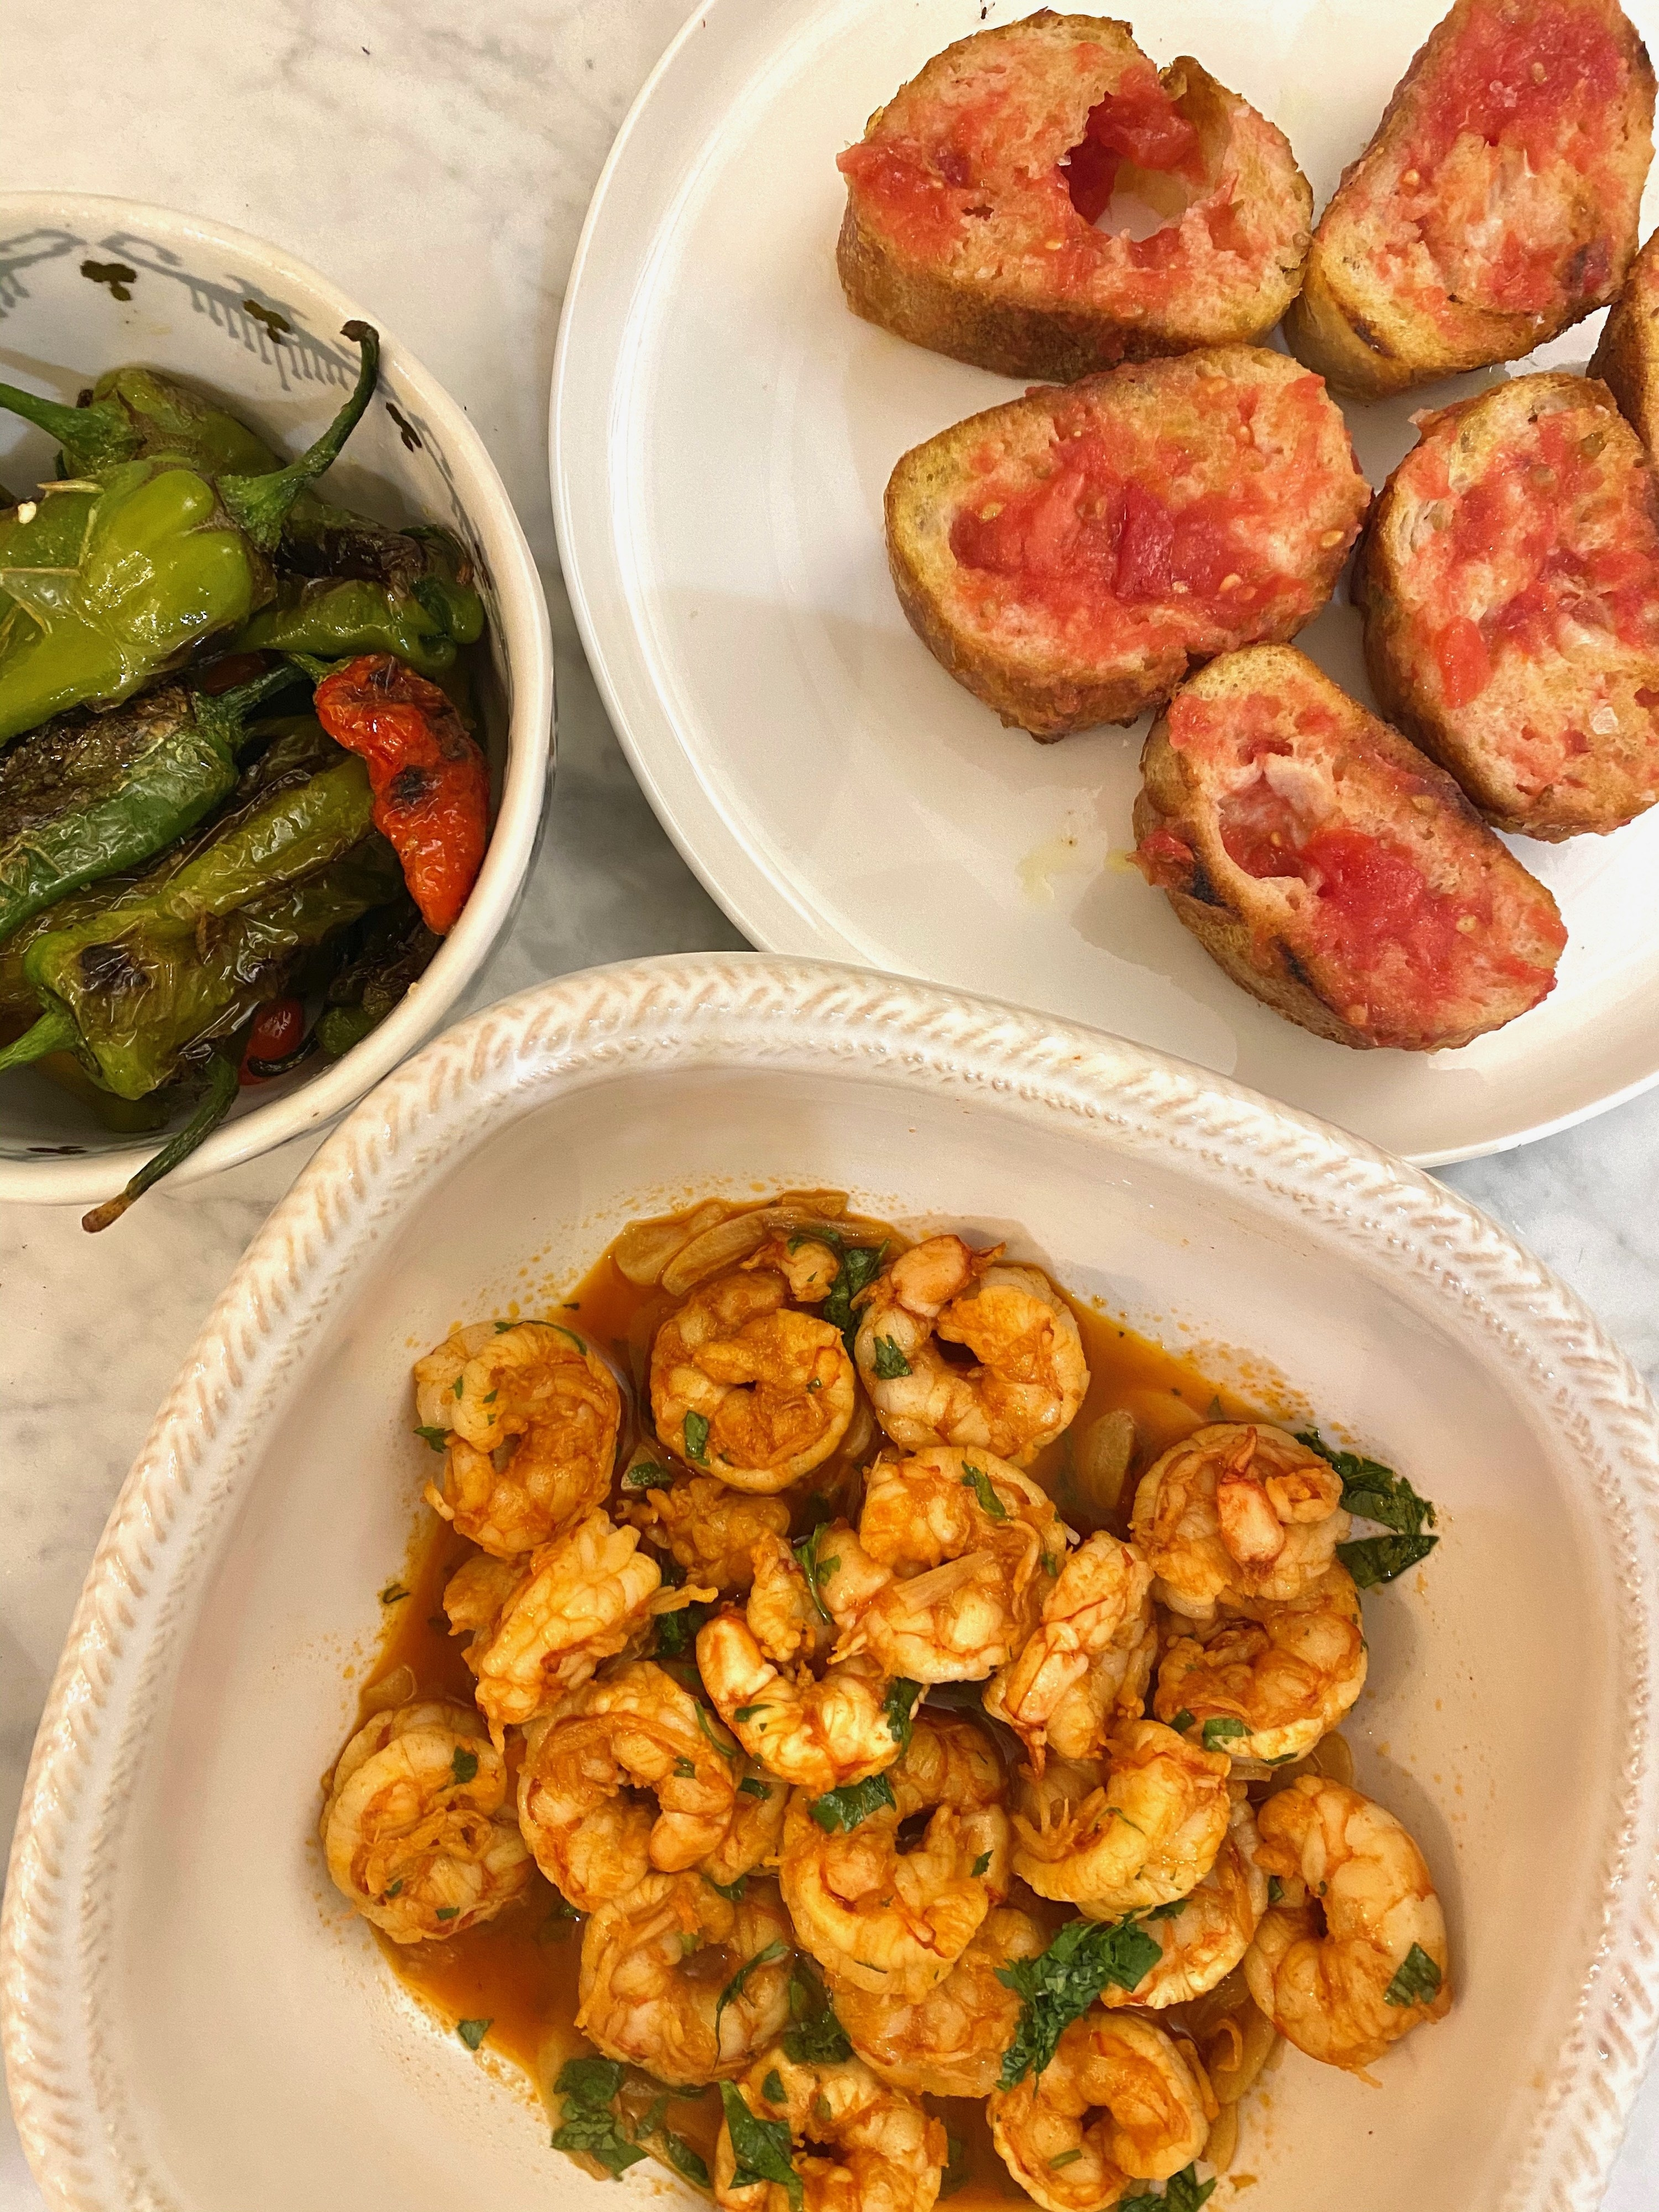 A plate of tomato bread, a bowl of shrimp in garlic sauce, and a third bowl of shishito peppers.